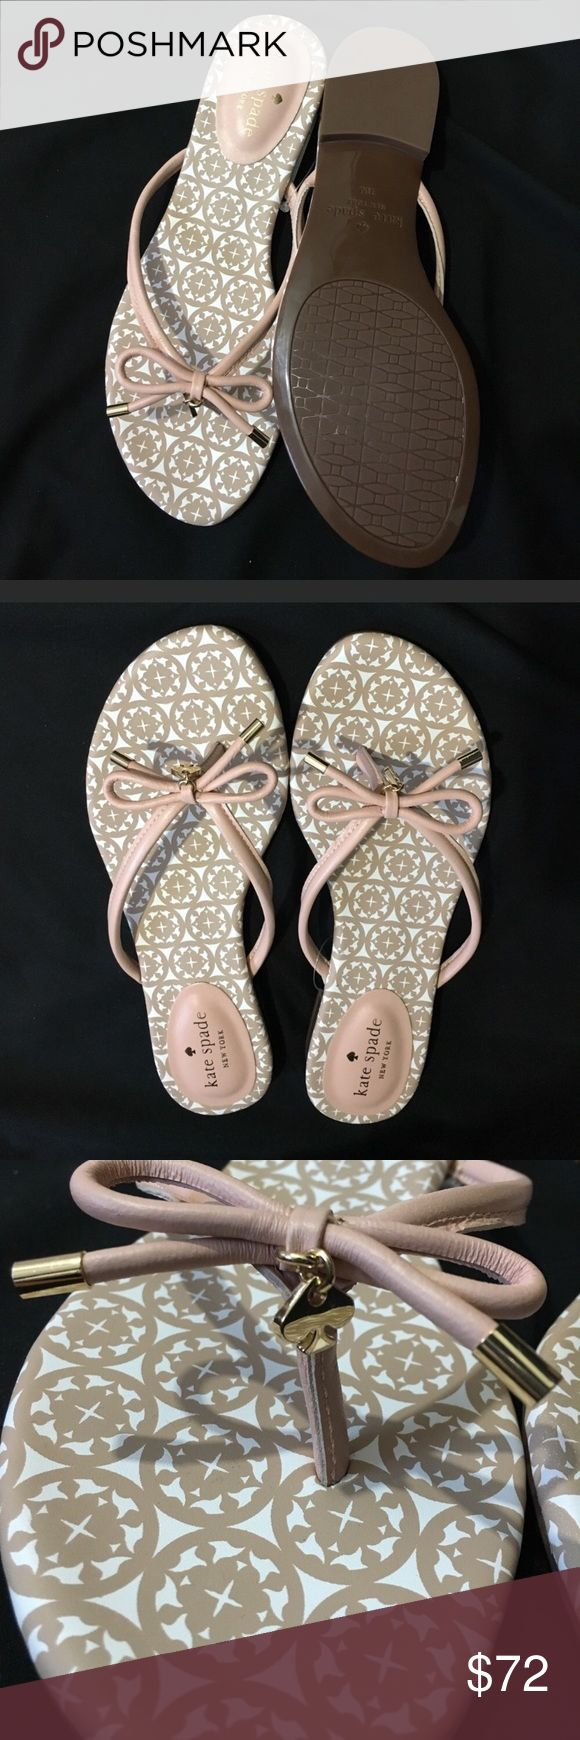 Kate Spade Flip Flops leather A stunning, elegant and comfortable flip flops from kate spade. BRAND NEW. NEVER WORN Perfect for pairing with warm weather outfit. They will deliver all the style and comfort your day. STUNNING PIECE HIGH QUALITY Metal-tipped ties accent the vachetta-leather thong strap of a kicky flip-flop that's just the thing for your next getaway. Leather upper, lining and sole Retail $118 Salon Shoes kate spade Shoes